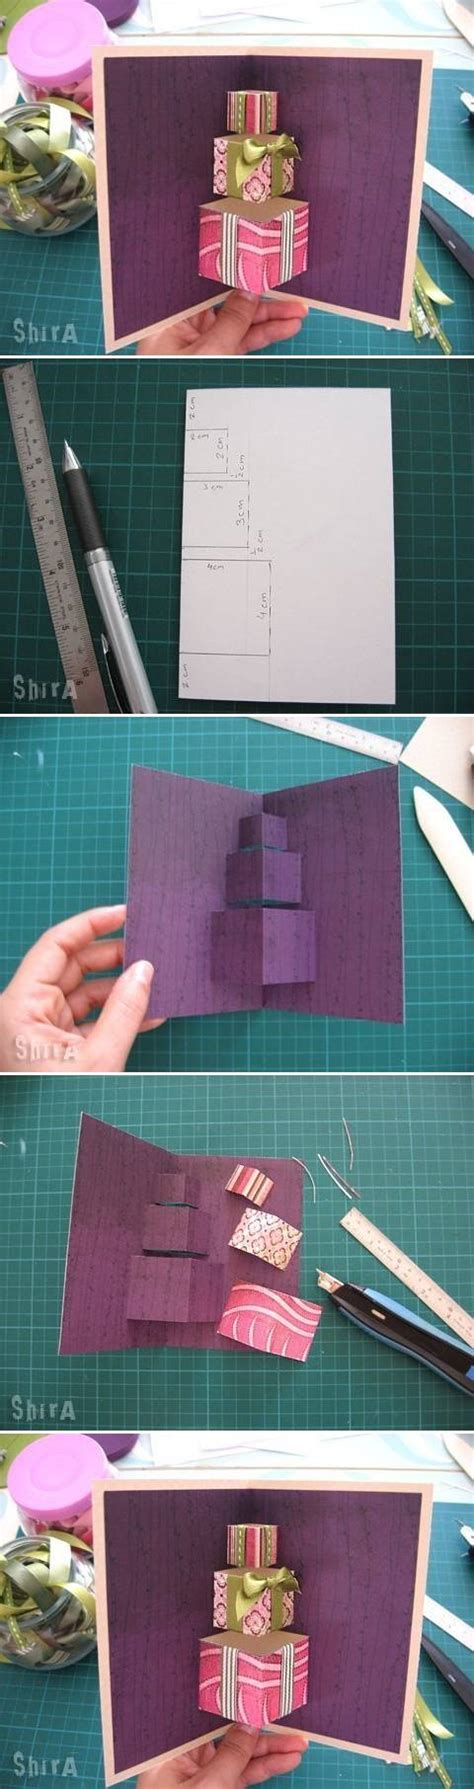 make 3d cards how to make simple 3d gift card step by step diy tutorial